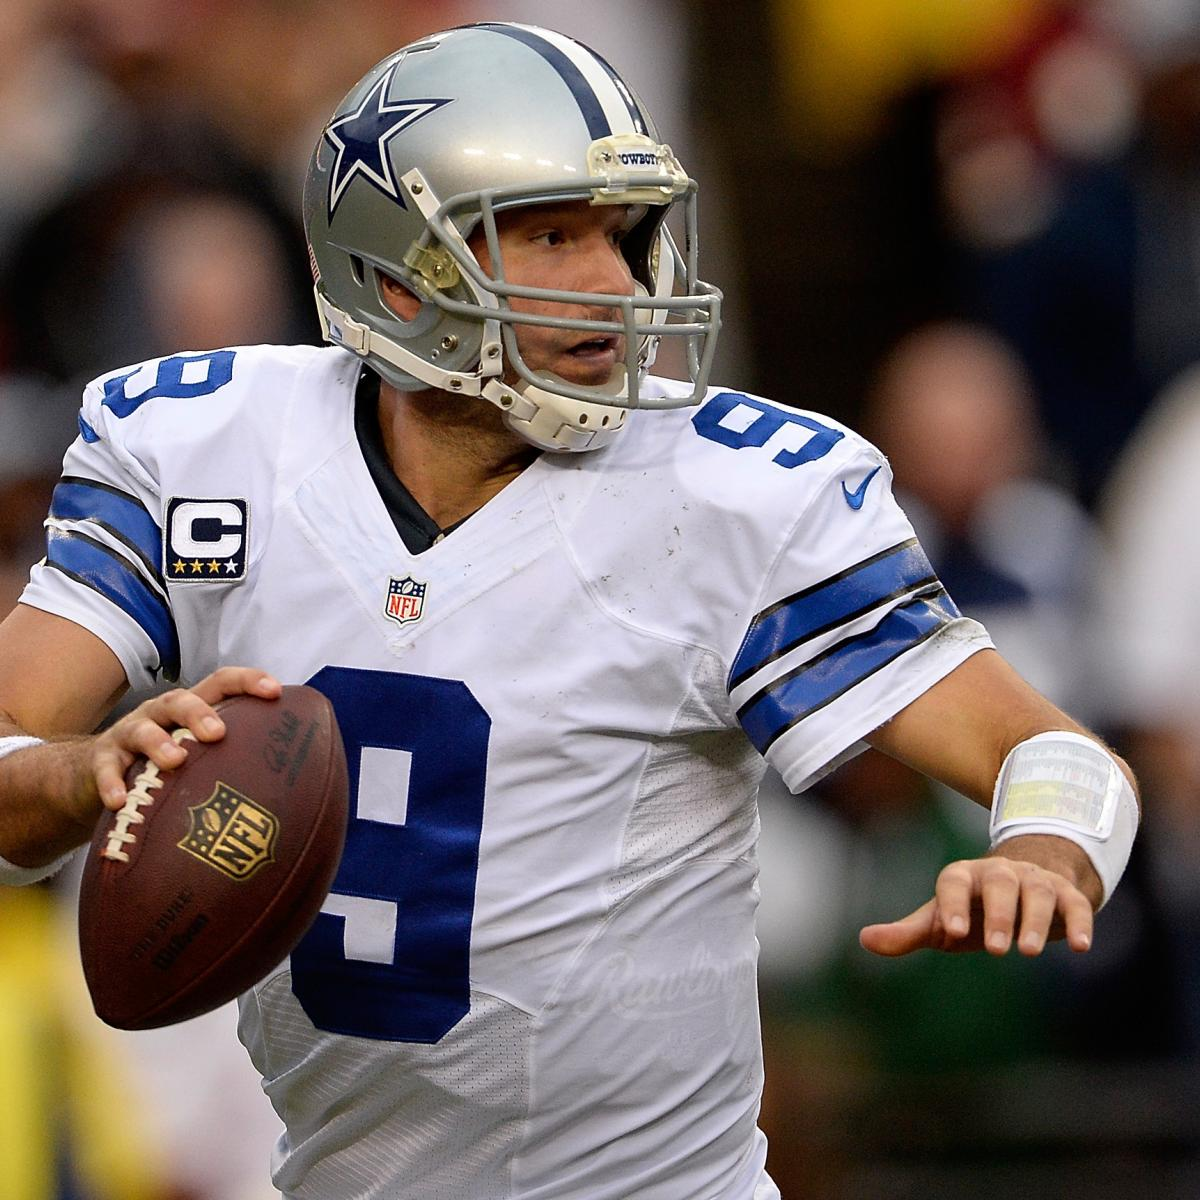 San Diego Chargers Dallas Cowboys: Tony Romo Out For Dallas Cowboys' Preseason Opener Vs. San